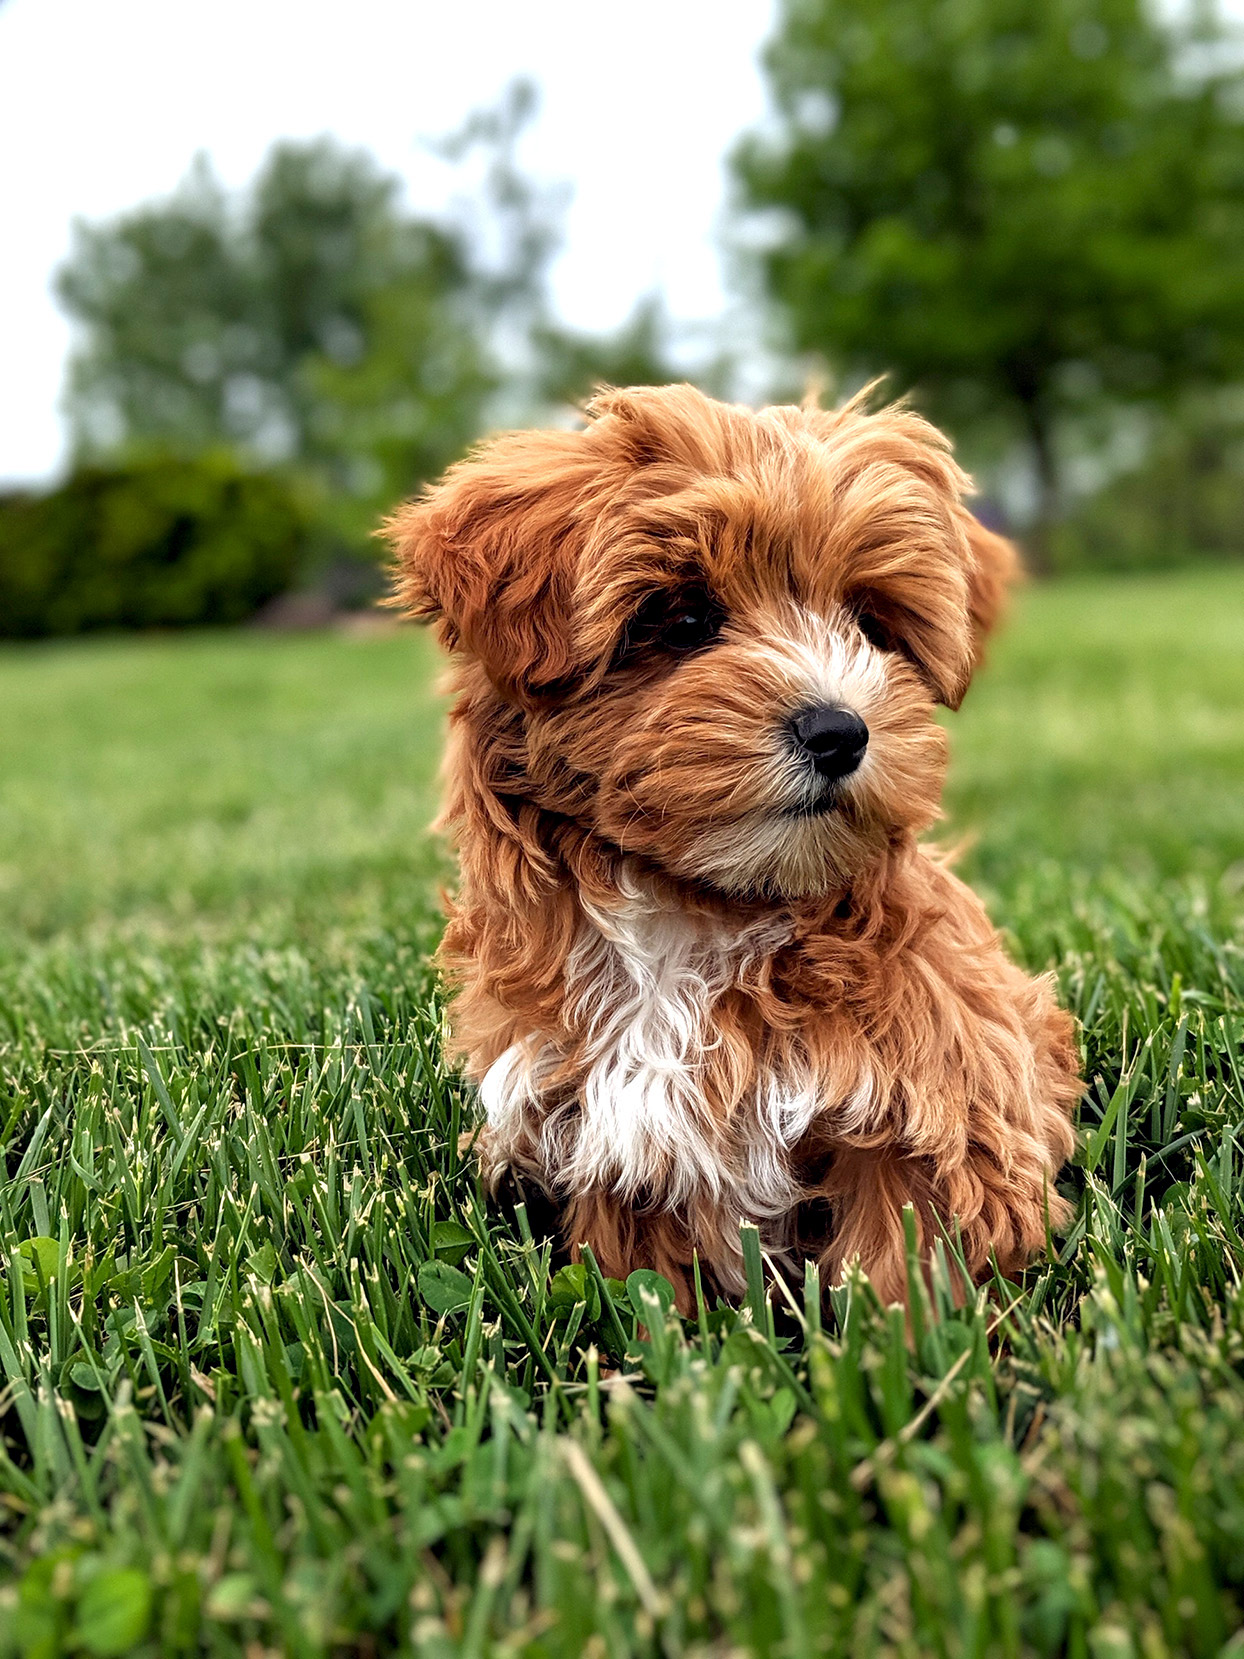 Red-haired yorkiepoo puppy sits in grass